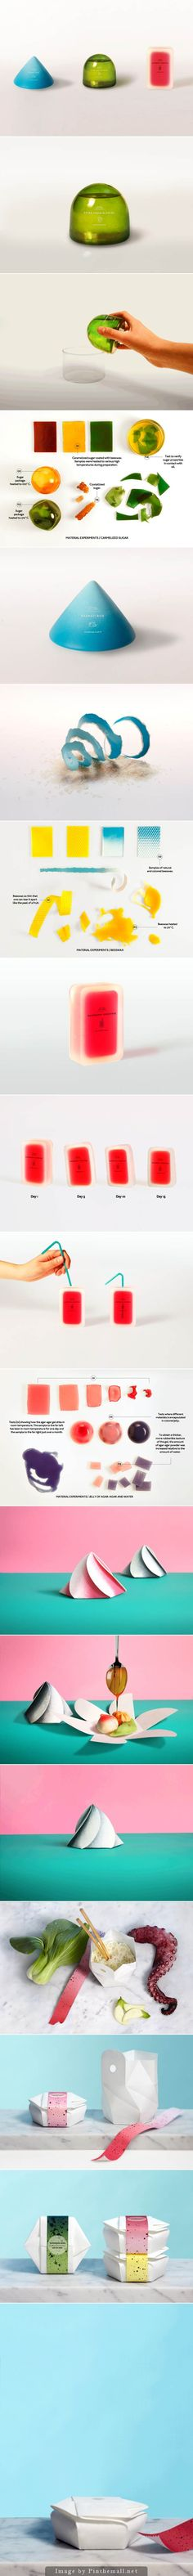 Clever collection of packaging ideas for the future (some animated) so click on the link curated by Packaging Diva PD created via http://www.ideafixa.com/embalagens-do-futuro/